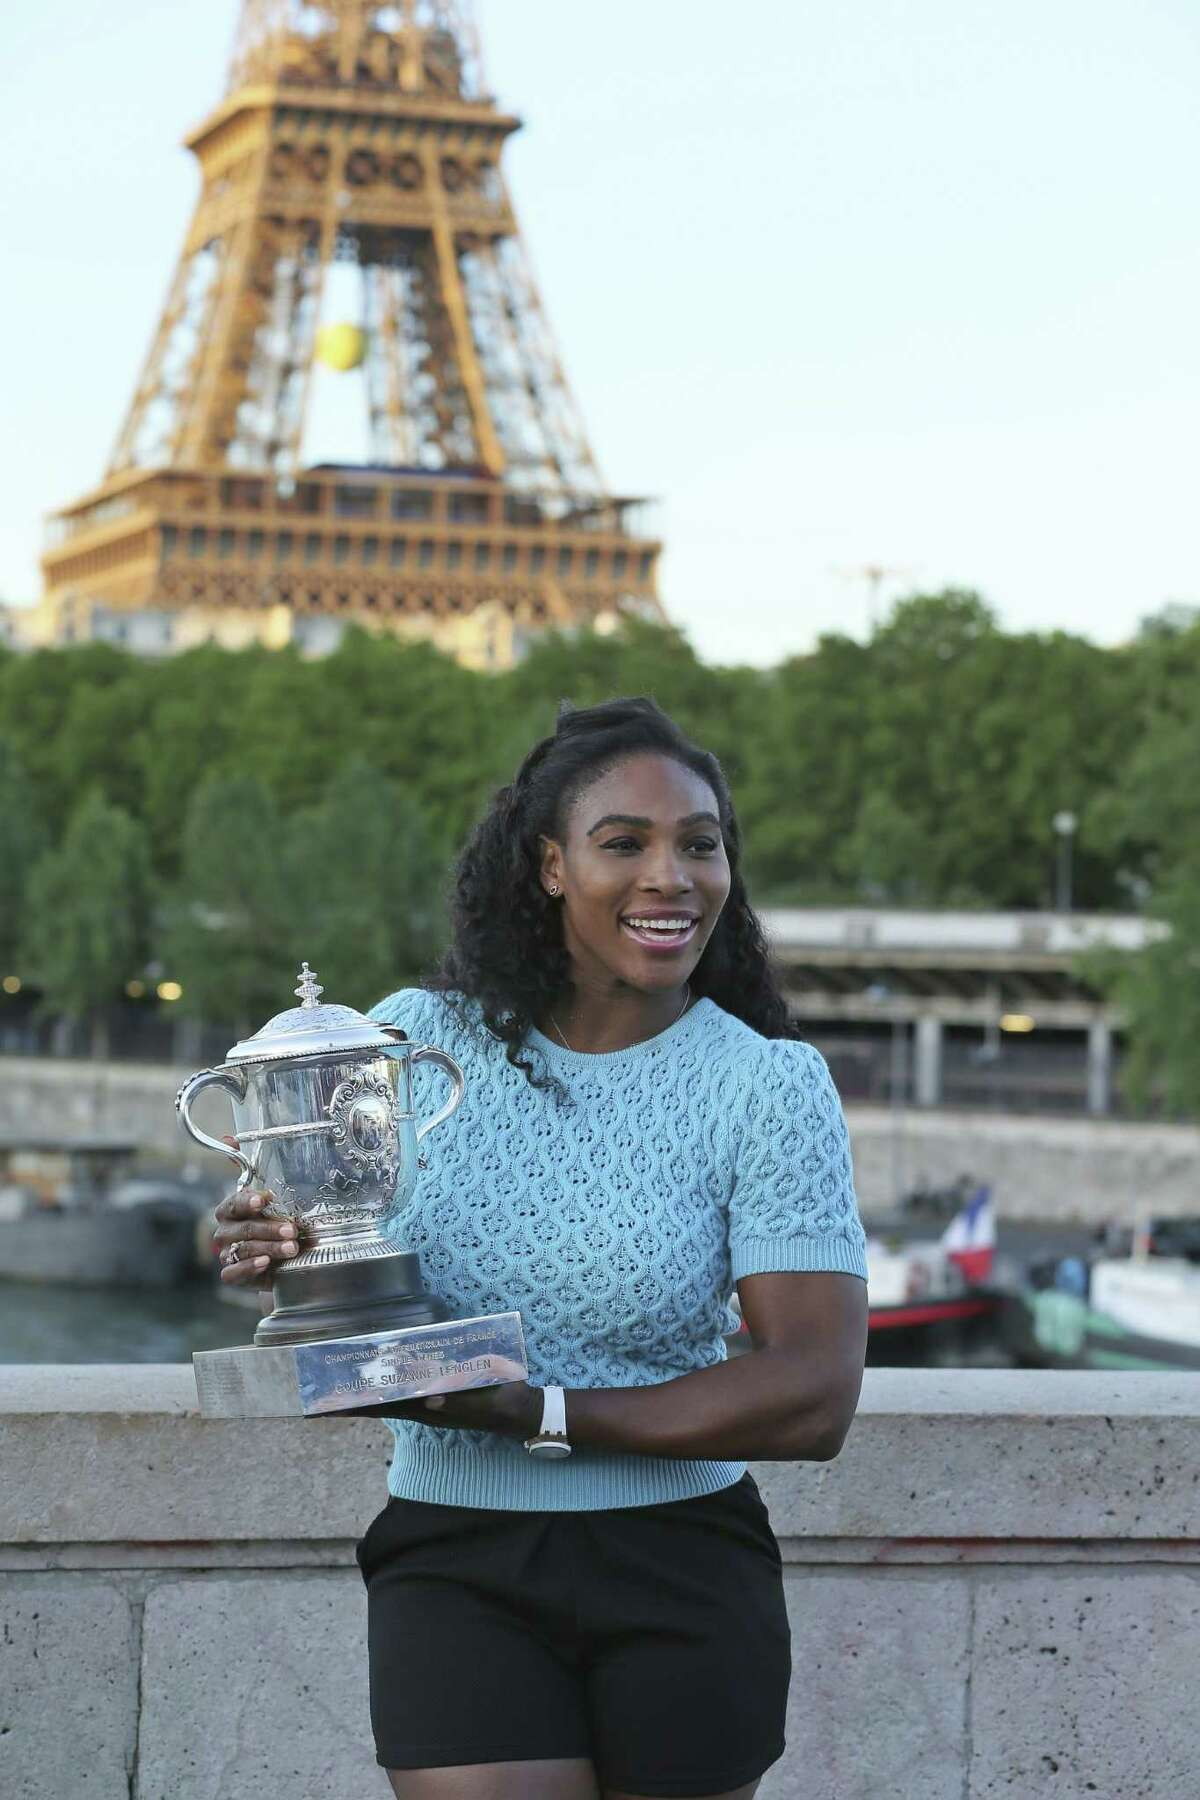 Serena Williams poses with her trophy after defeating Lucie Safarova 6-3, 6-7, 6-2 in the women's final of the French Open on Saturday at Roland Garros Stadium in Paris.